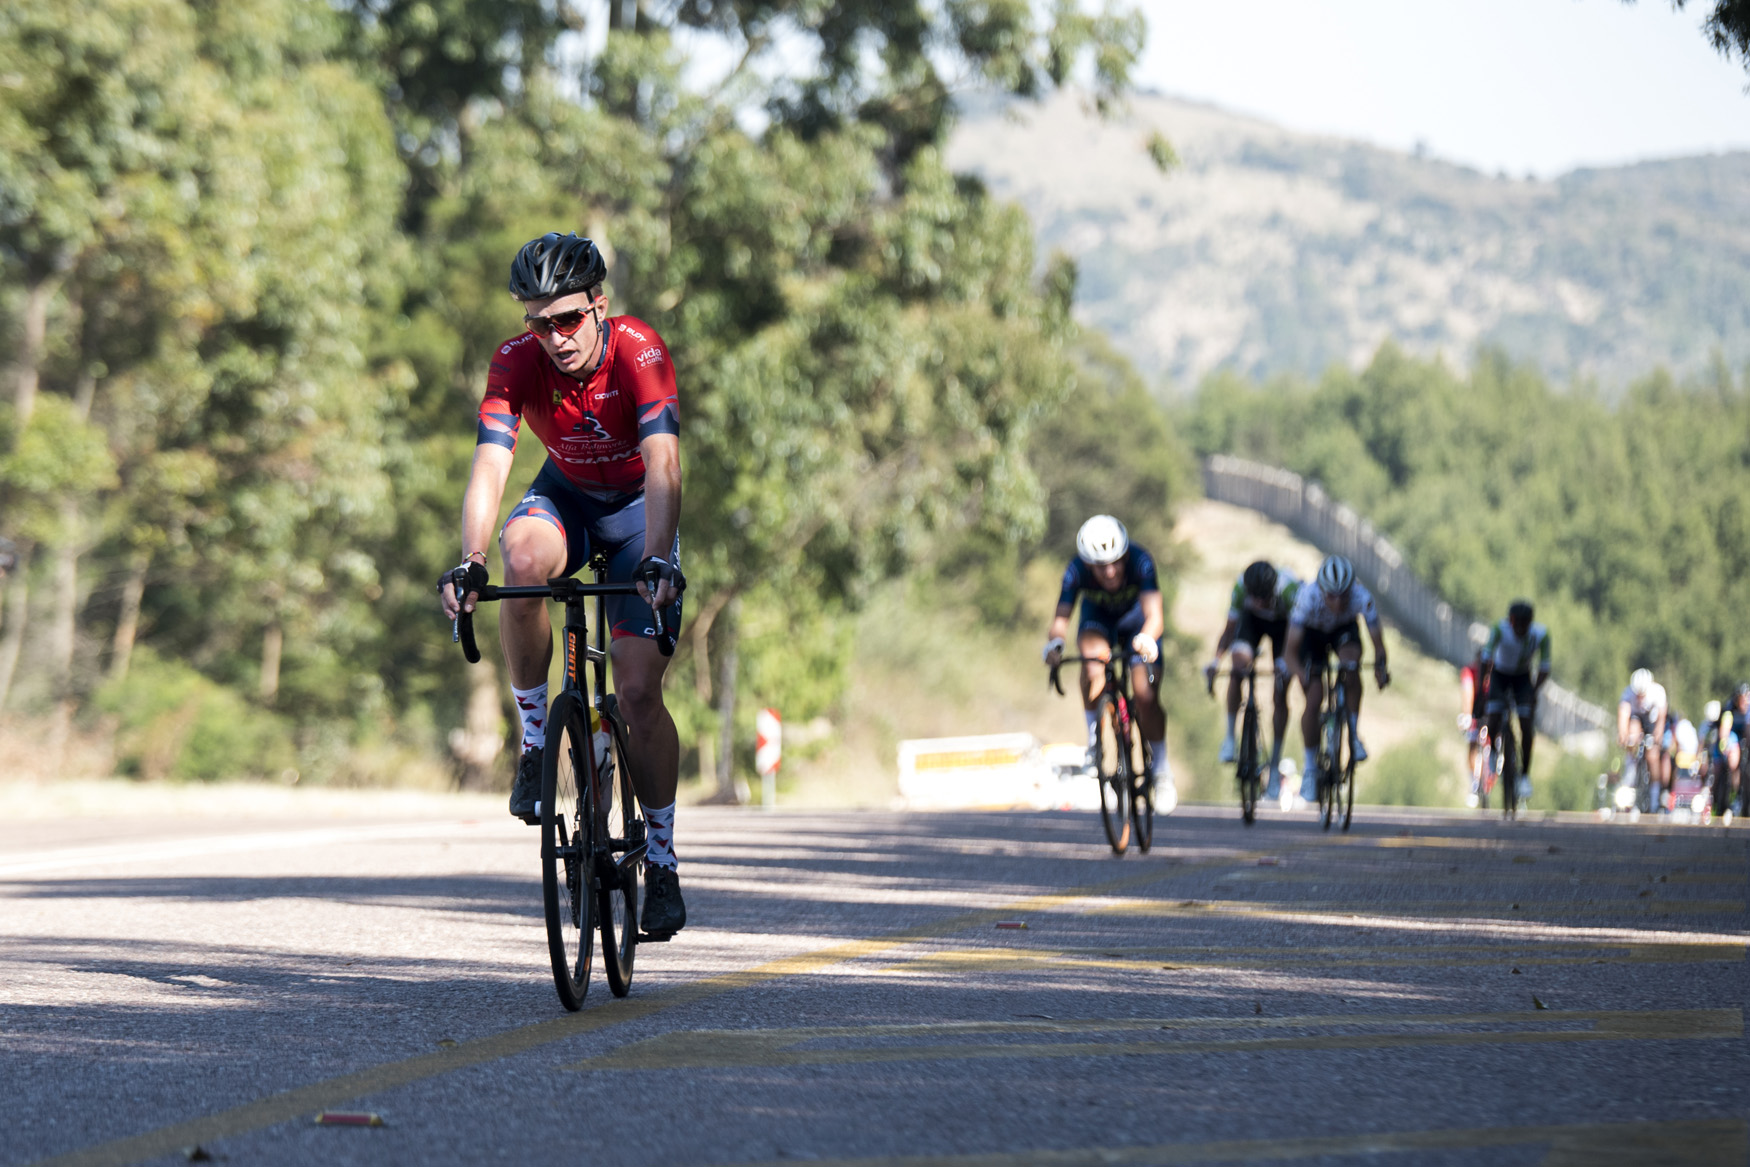 Today's Red Jersey winner for most combative was none other than Hendrik Kruger (Alfa Bodyworks Giant), who could be found in the front of the race throughout the distance from Polokwane to Tzaneen on Stage 2 of the 2019 Tour de Limpopo (UCI 2.2) from 14-18 May © Tour de Limpopo/Andrew Mc Fadden